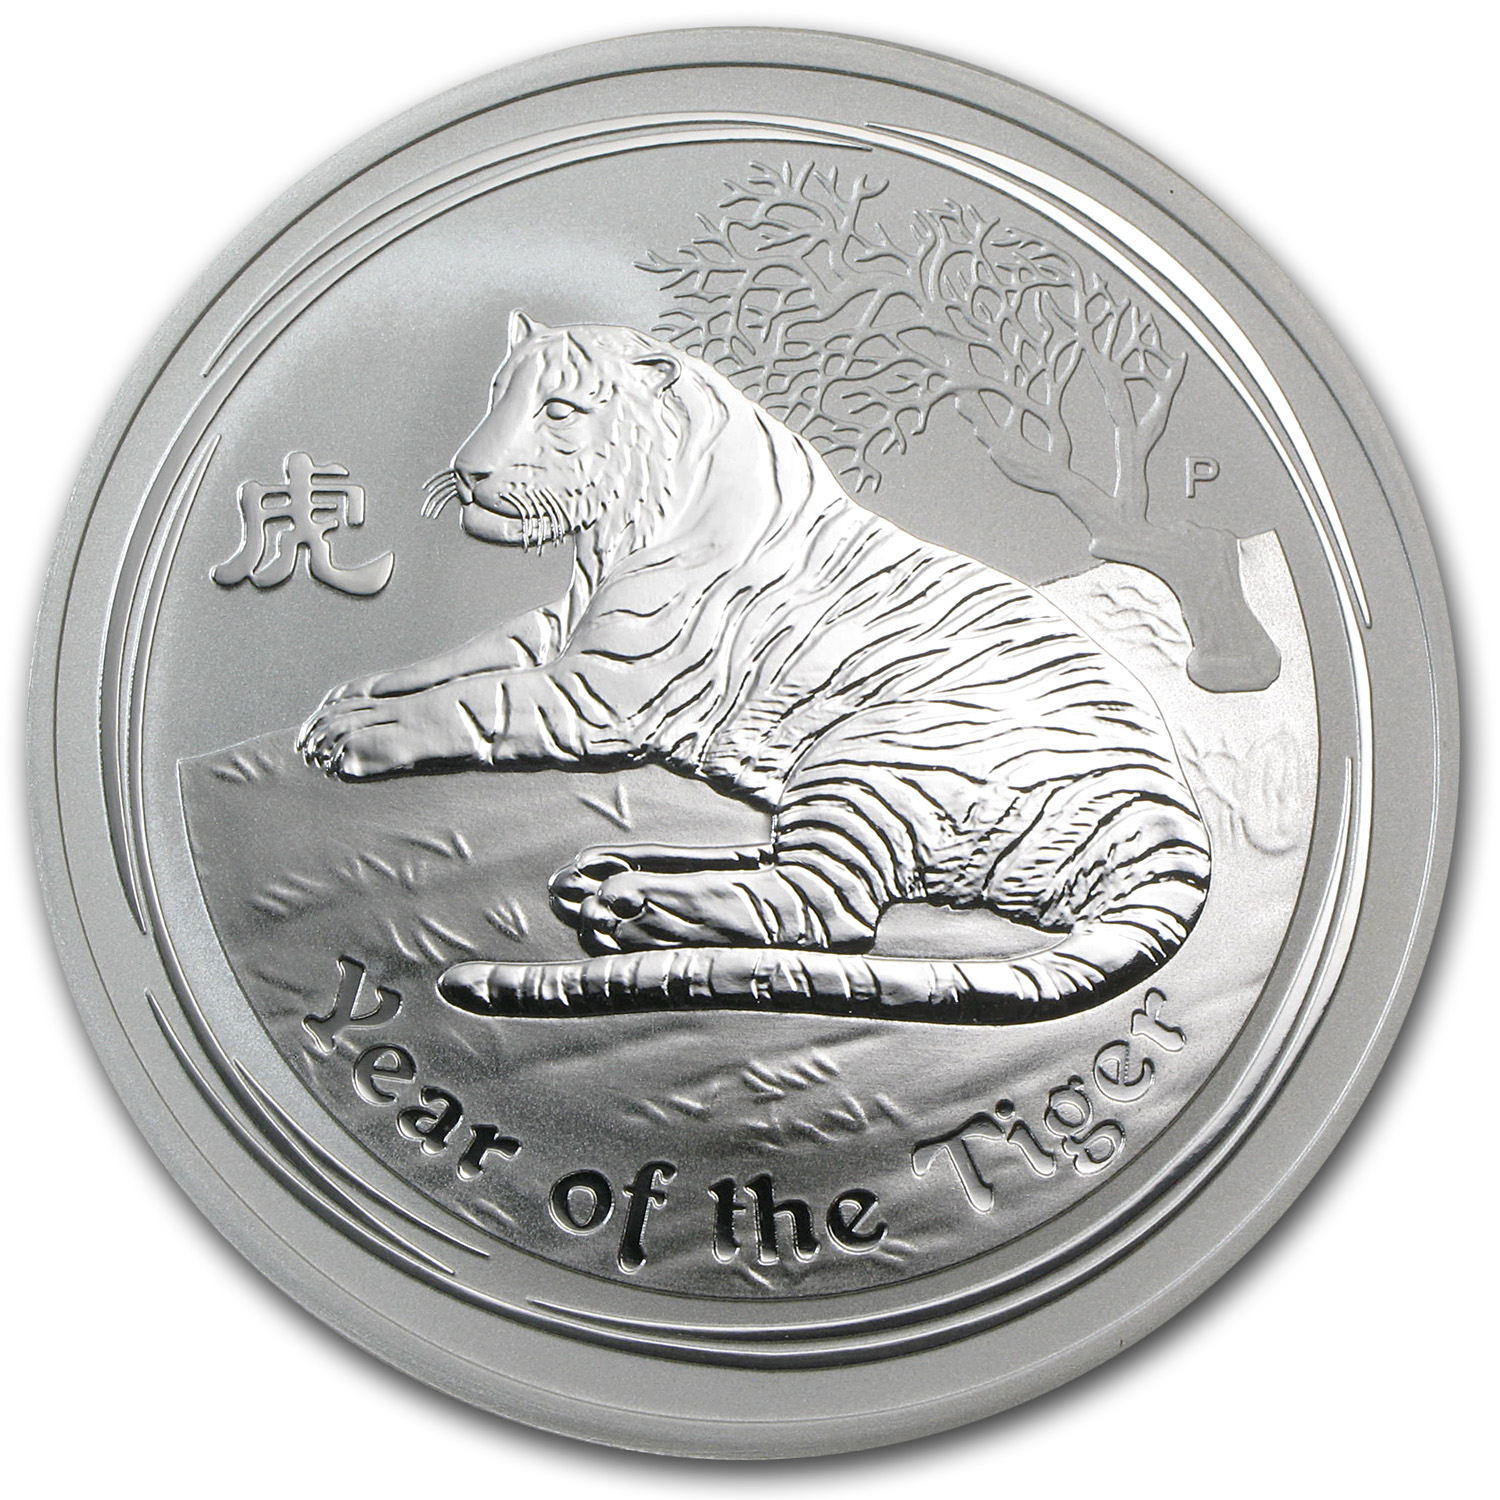 2010 Australia 2 oz Silver Year of the Tiger BU (Series II)